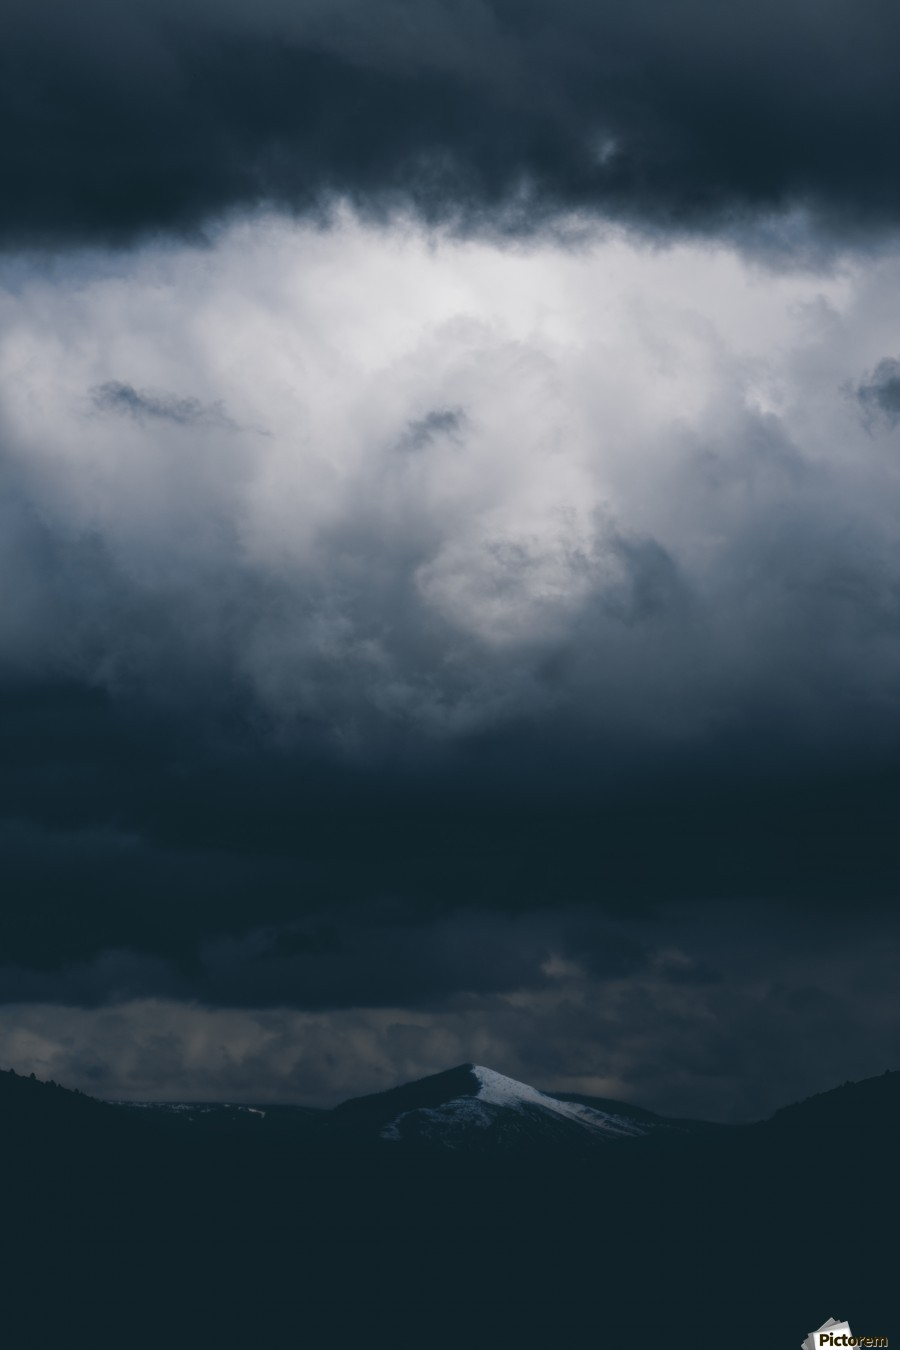 Spark , Marko Radovanovic , mountain, landscape, far_away, cloud, white, dark, contrast, moody, snow, snowy_peak, distance, bellow, above, serbia, kopaonik, wild, little, hunched, hidden, peak, one, battle,